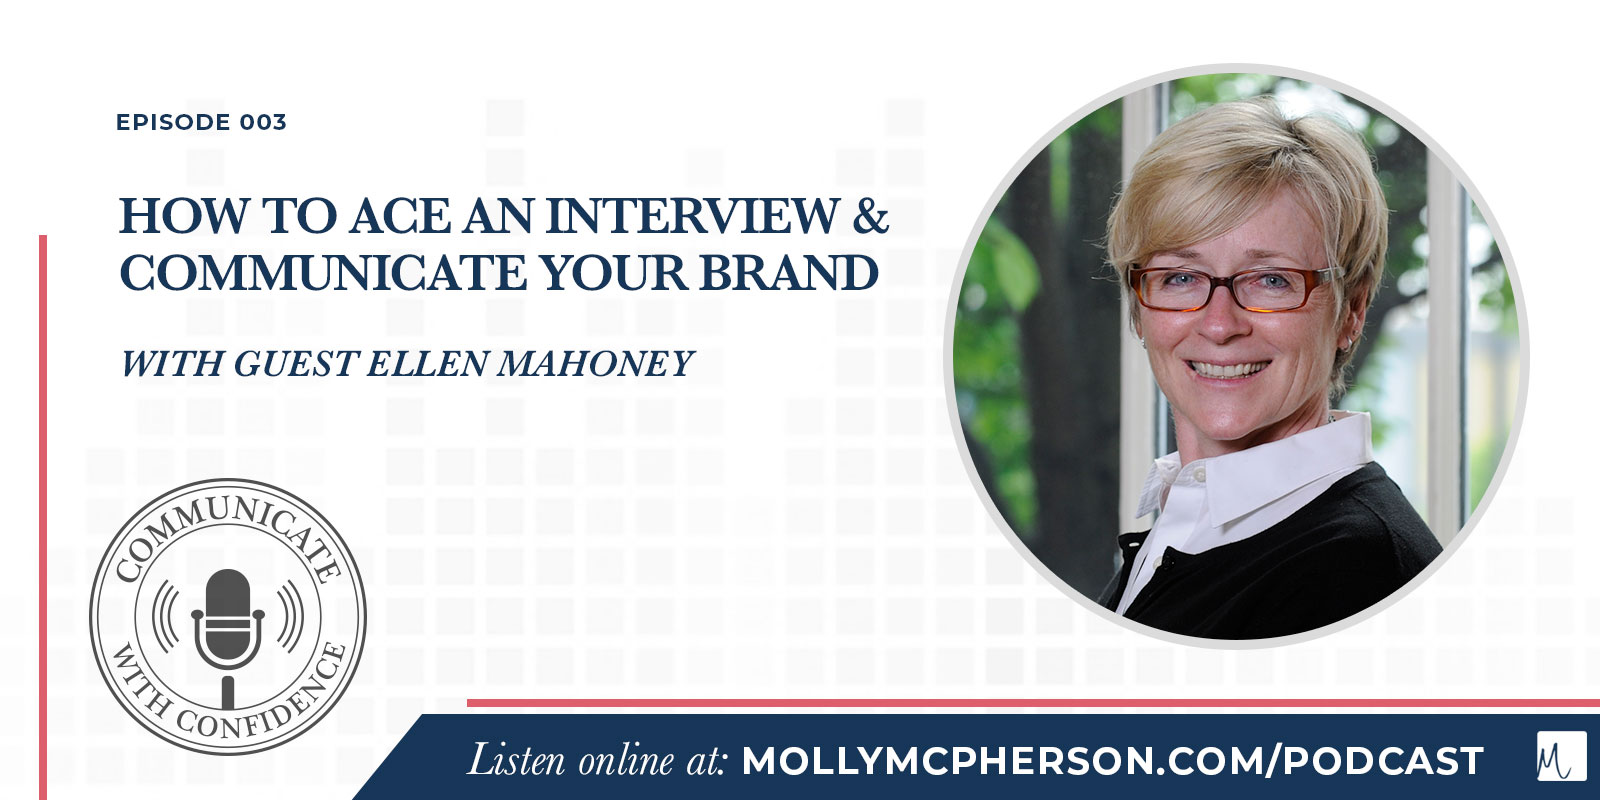 Interview Secrets from the Other Side of the Desk with Ellen Mahoney